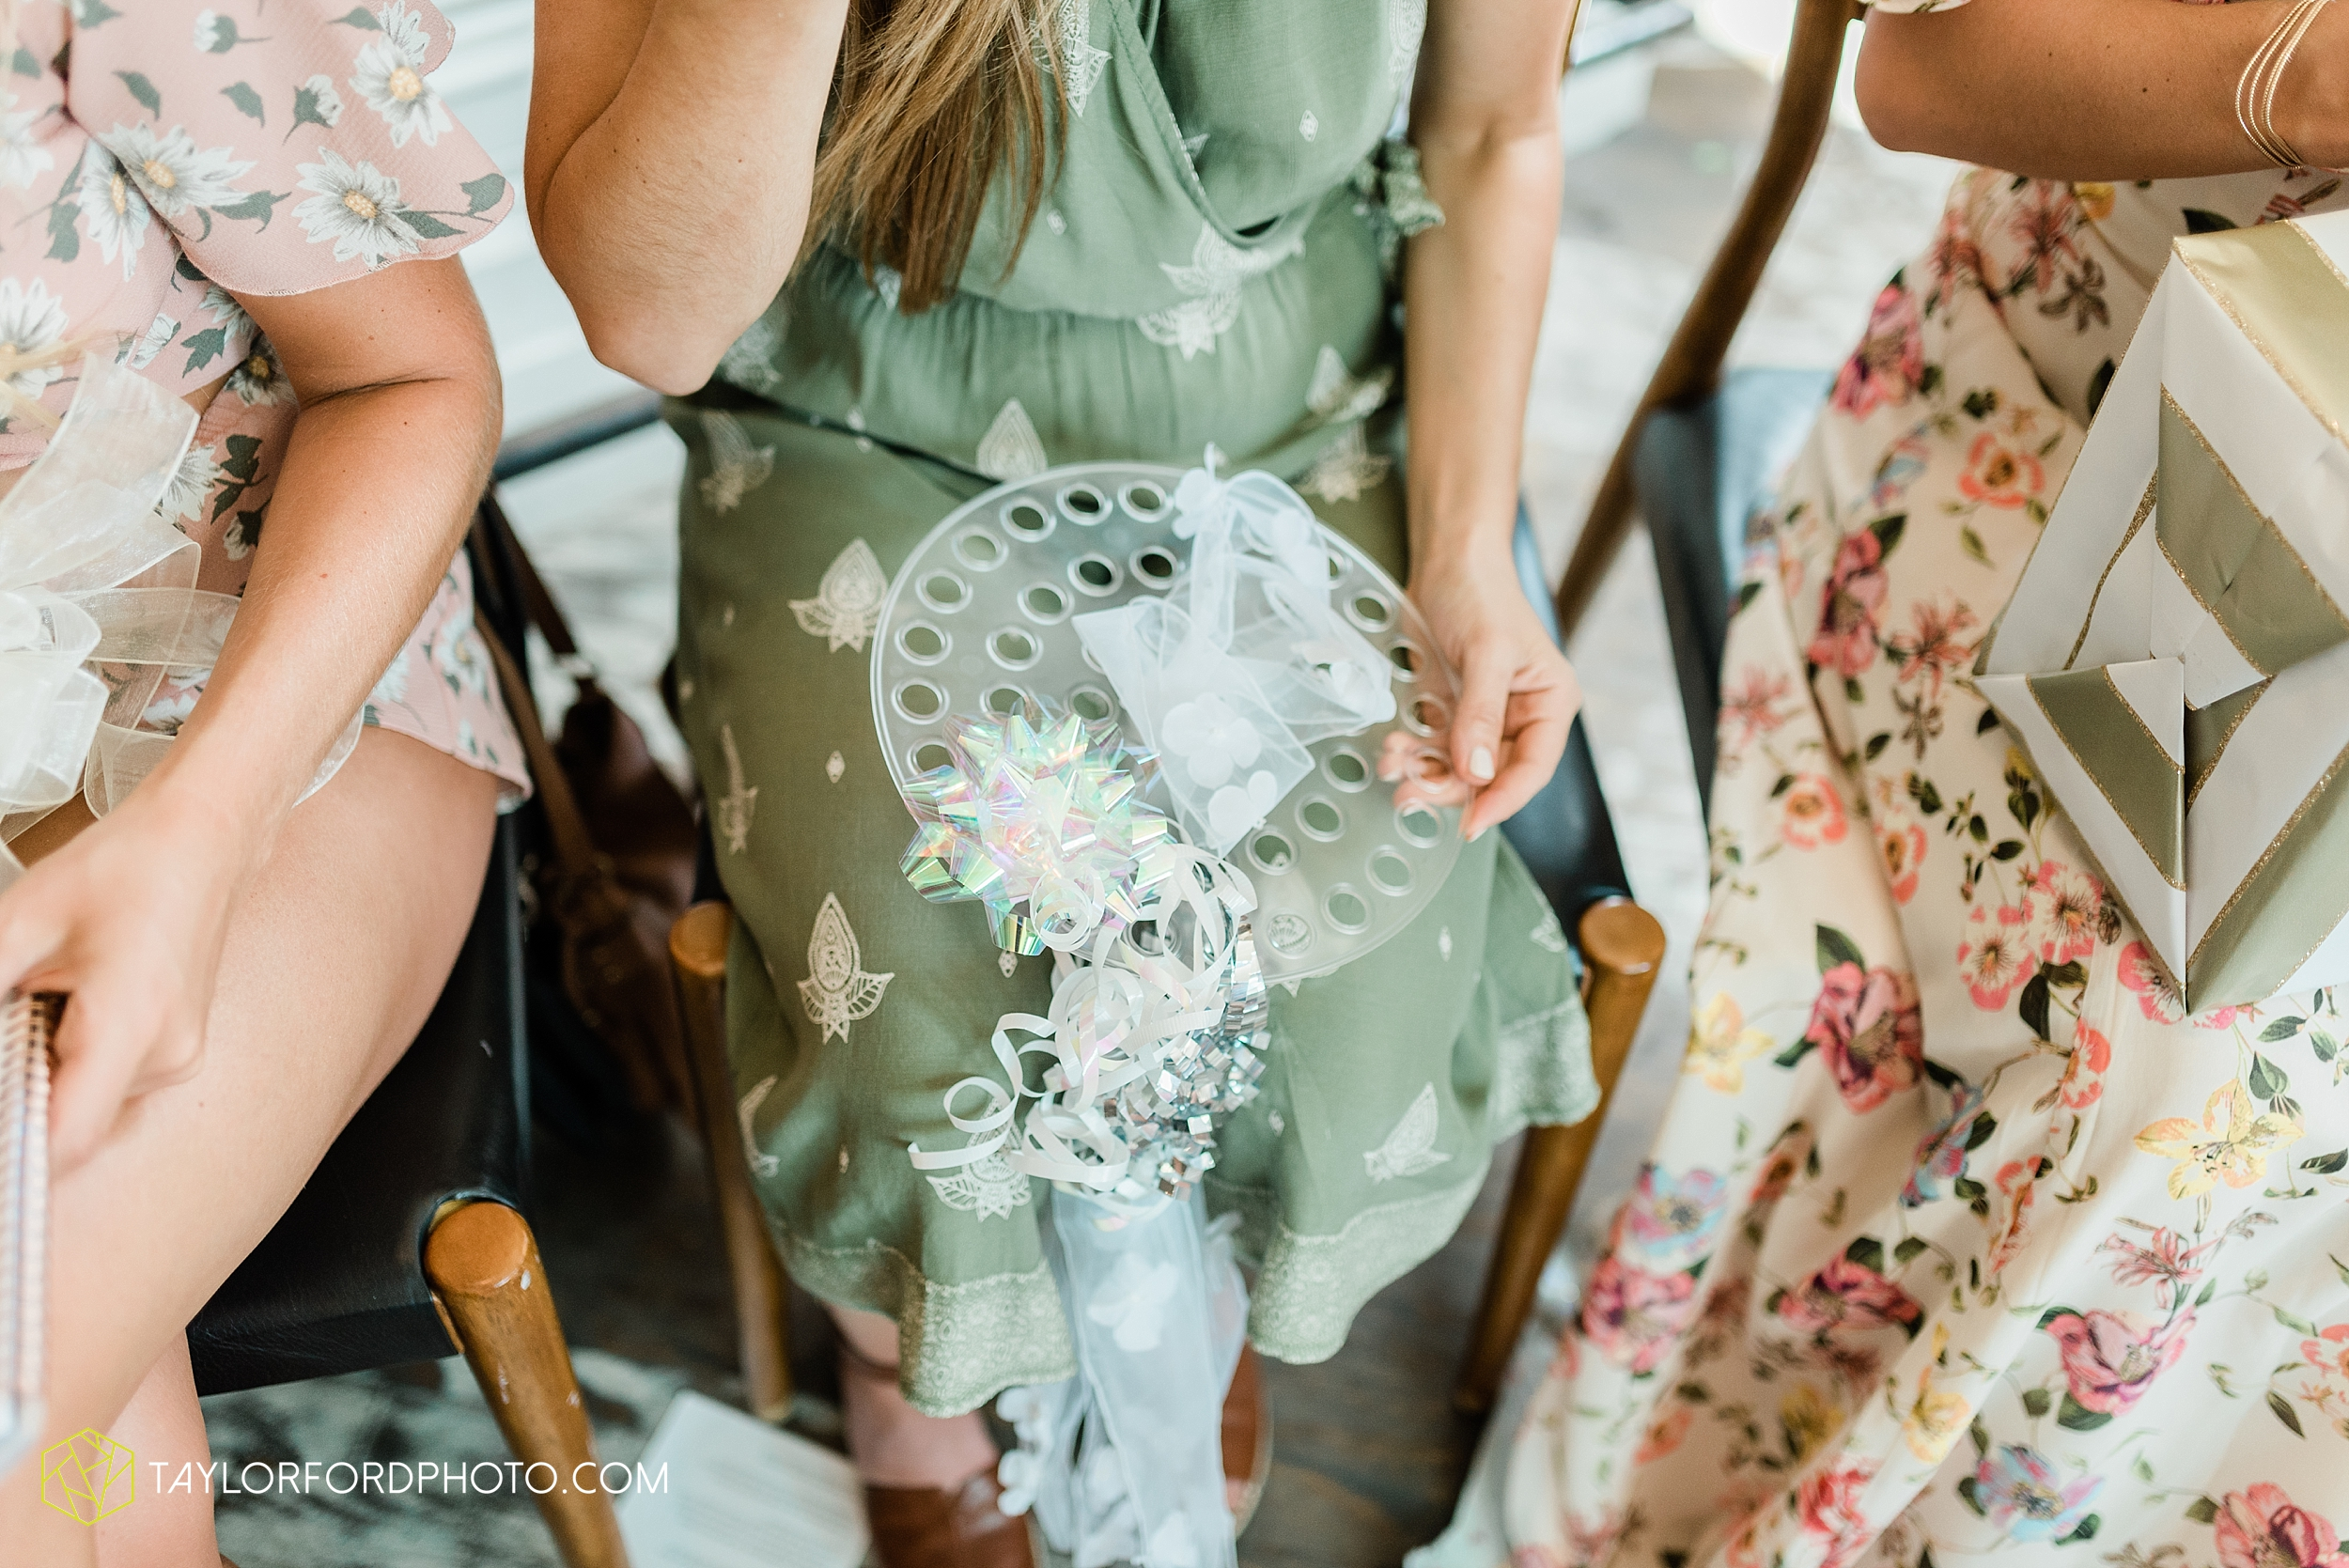 chicago-illinois-bridal-shower-little-goat-diner-west-loop-wedding-photographer-taylor-ford-photographer_8855.jpg